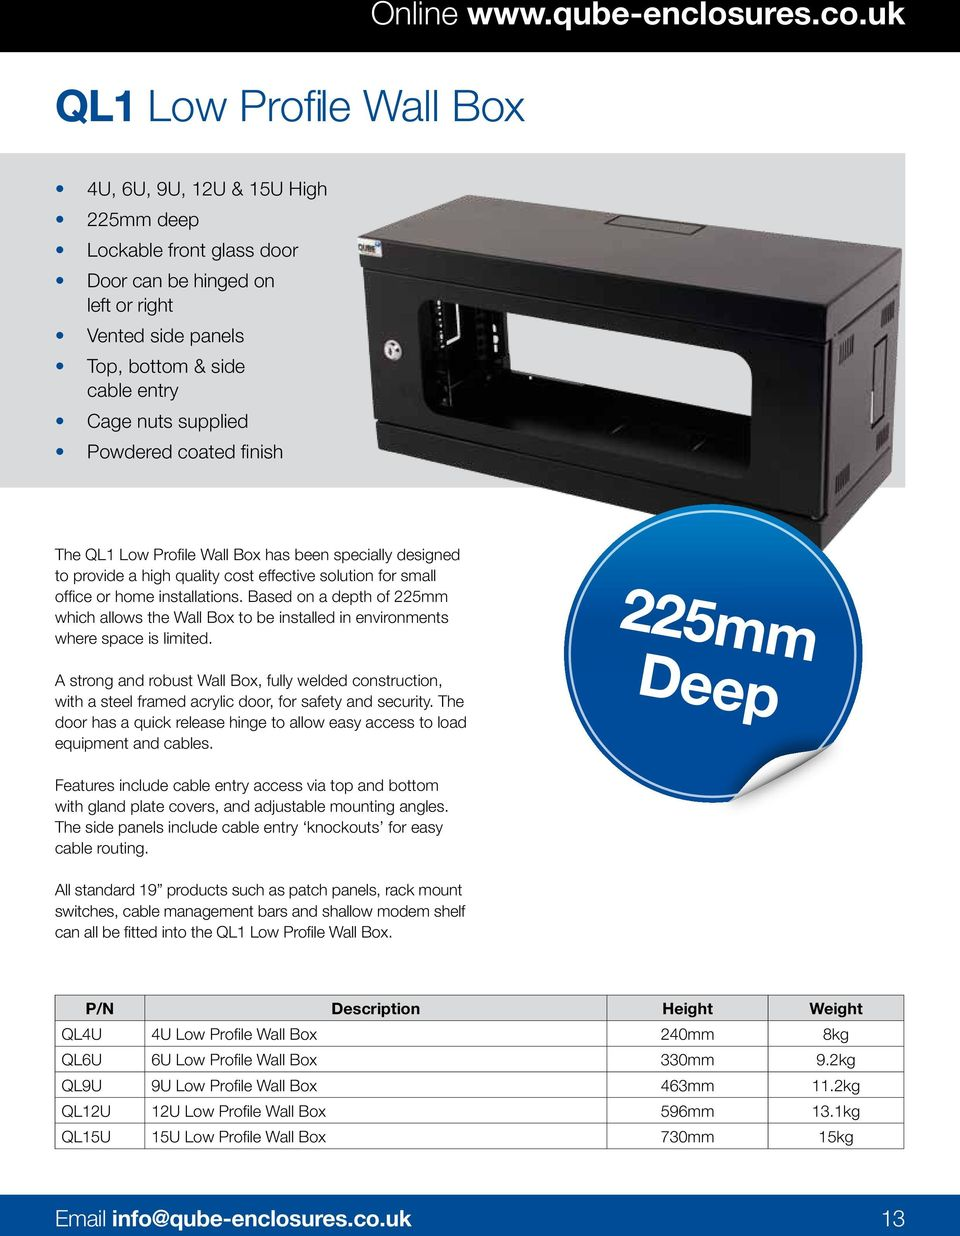 QL1 Low Profile Wall Box has been specially designed to provide a high quality cost effective solution for small office or home installations.